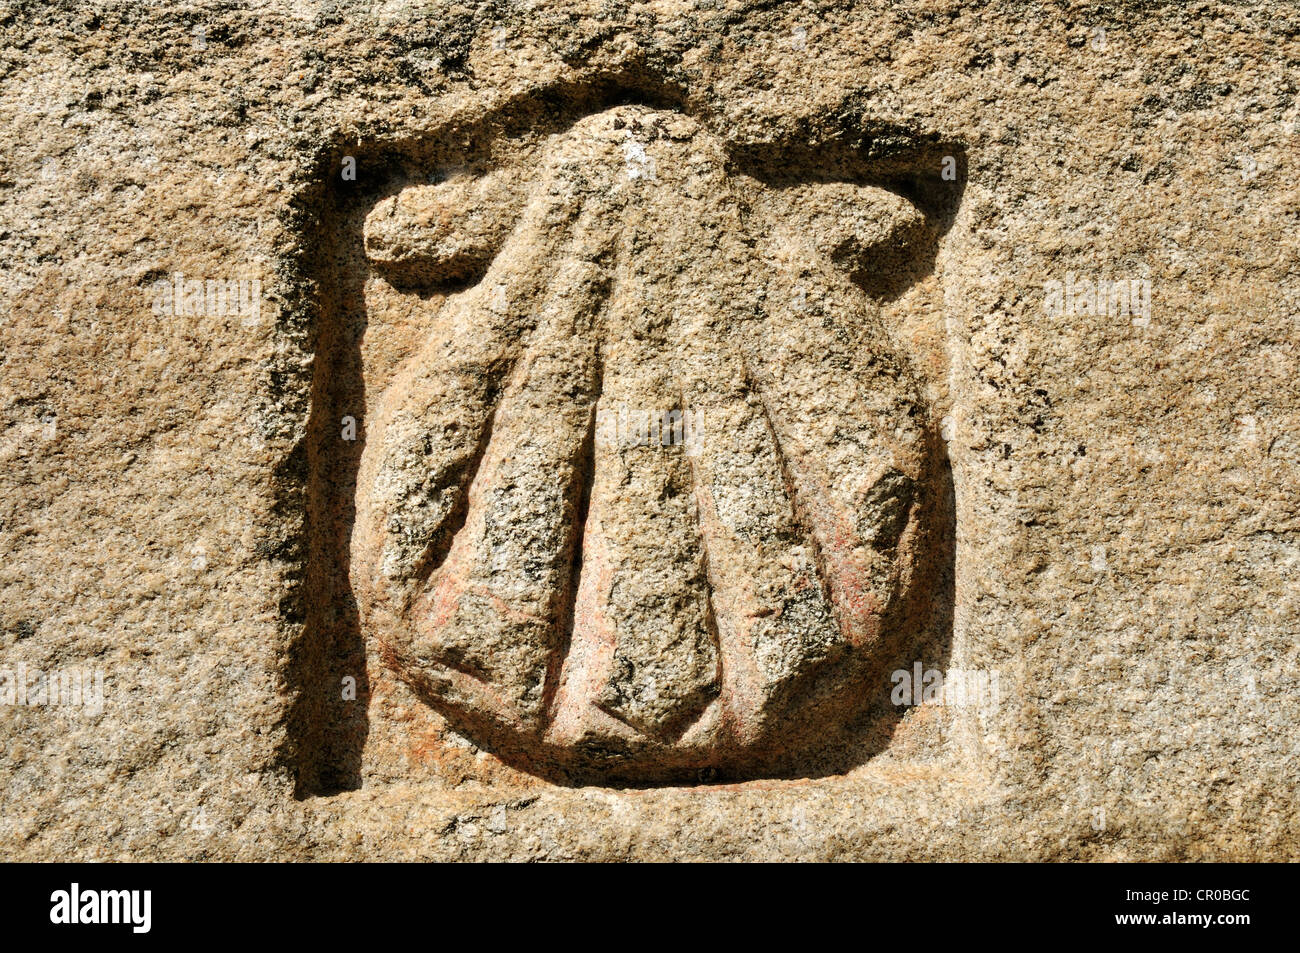 Scallop shell traditional emblem of james blaze of el camino de scallop shell traditional emblem of james blaze of el camino de santiago st james way avila castilla y leon or castile biocorpaavc Image collections